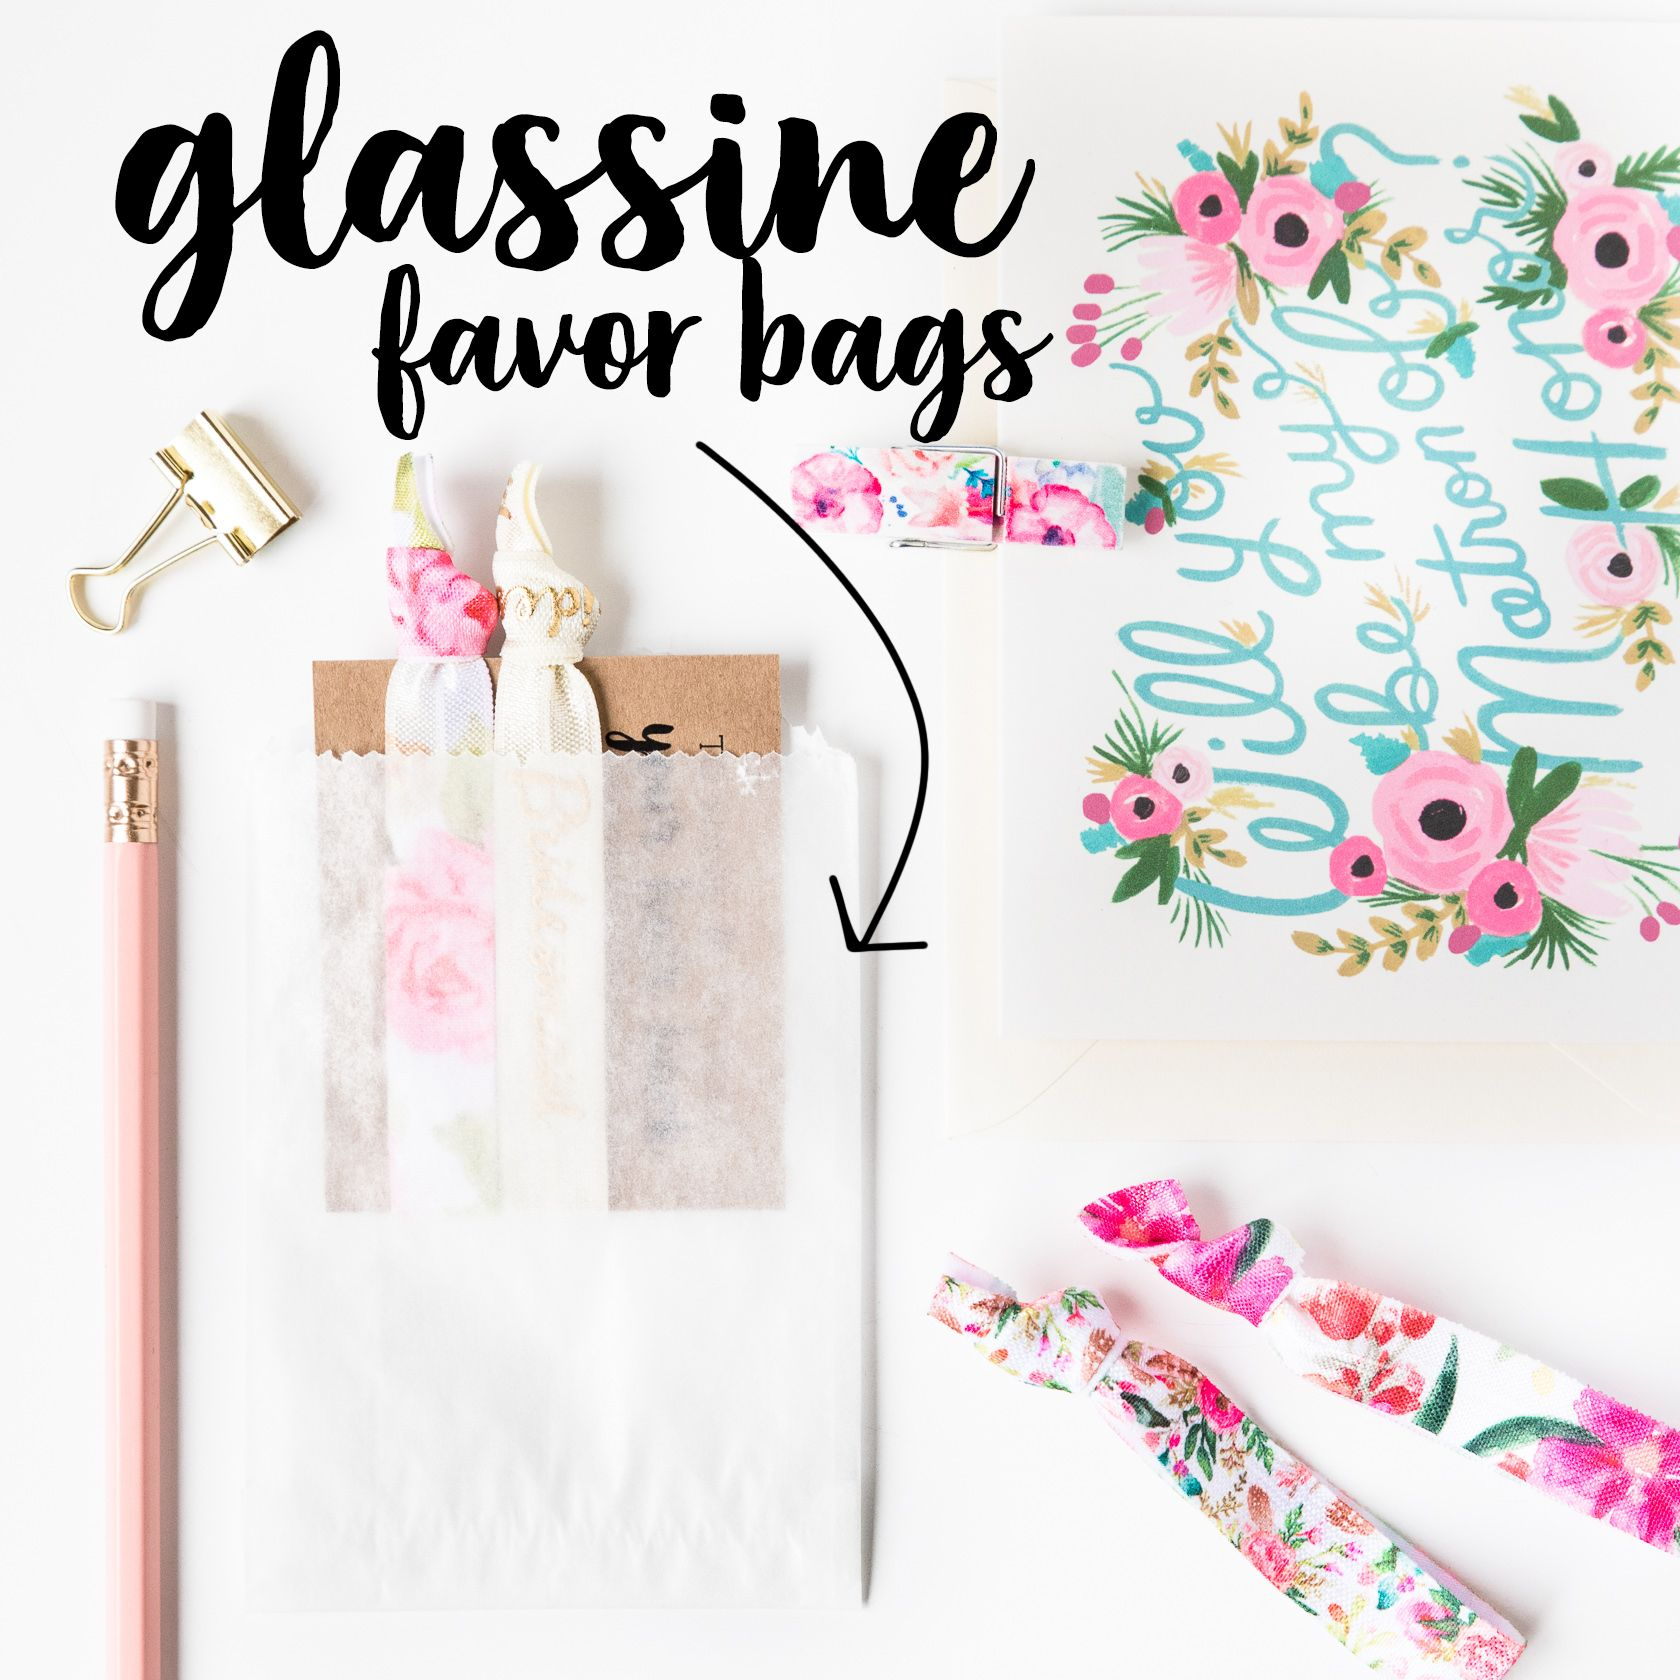 Glassine Favor Bags | Gift Packaging for Hair Tie Favors, Wedding ...